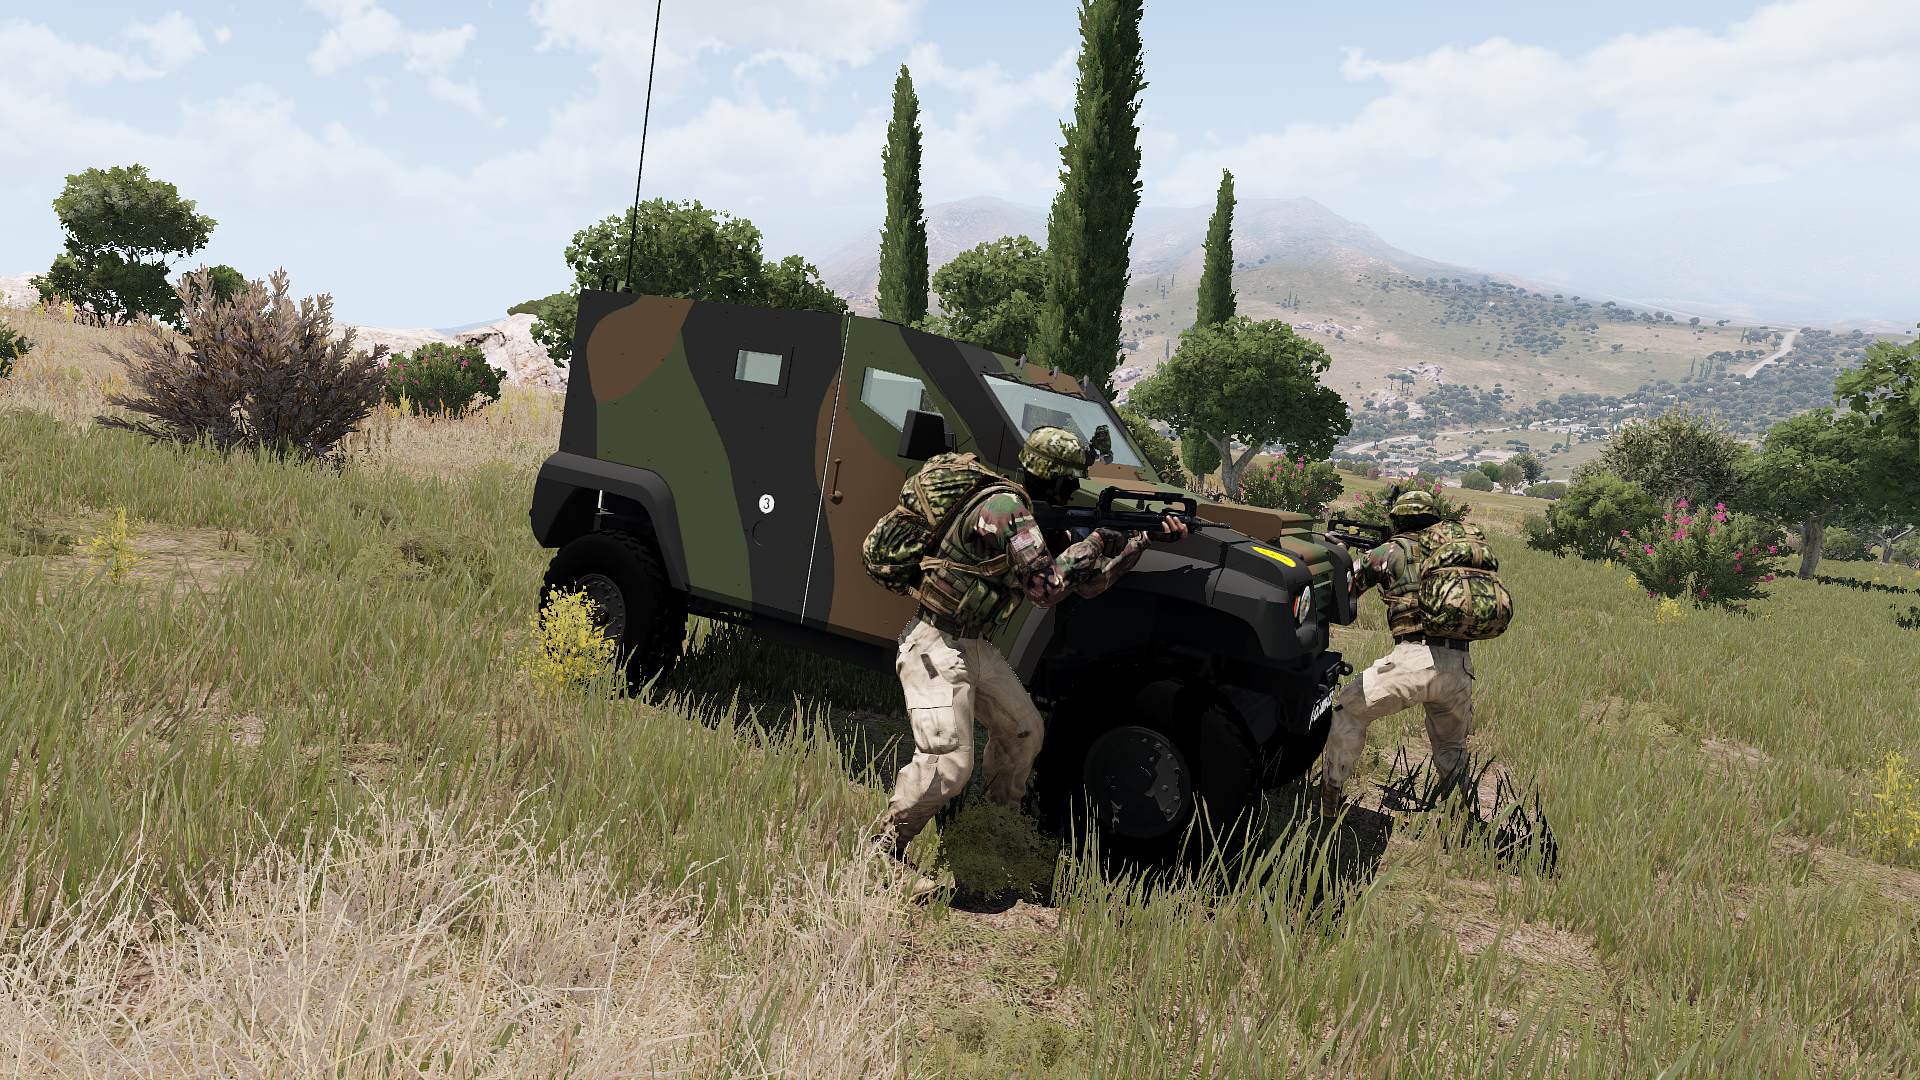 5cadfffdd62b7-ArmA 3 Screenshot 2019.04.10 - 15.55.34.53.png